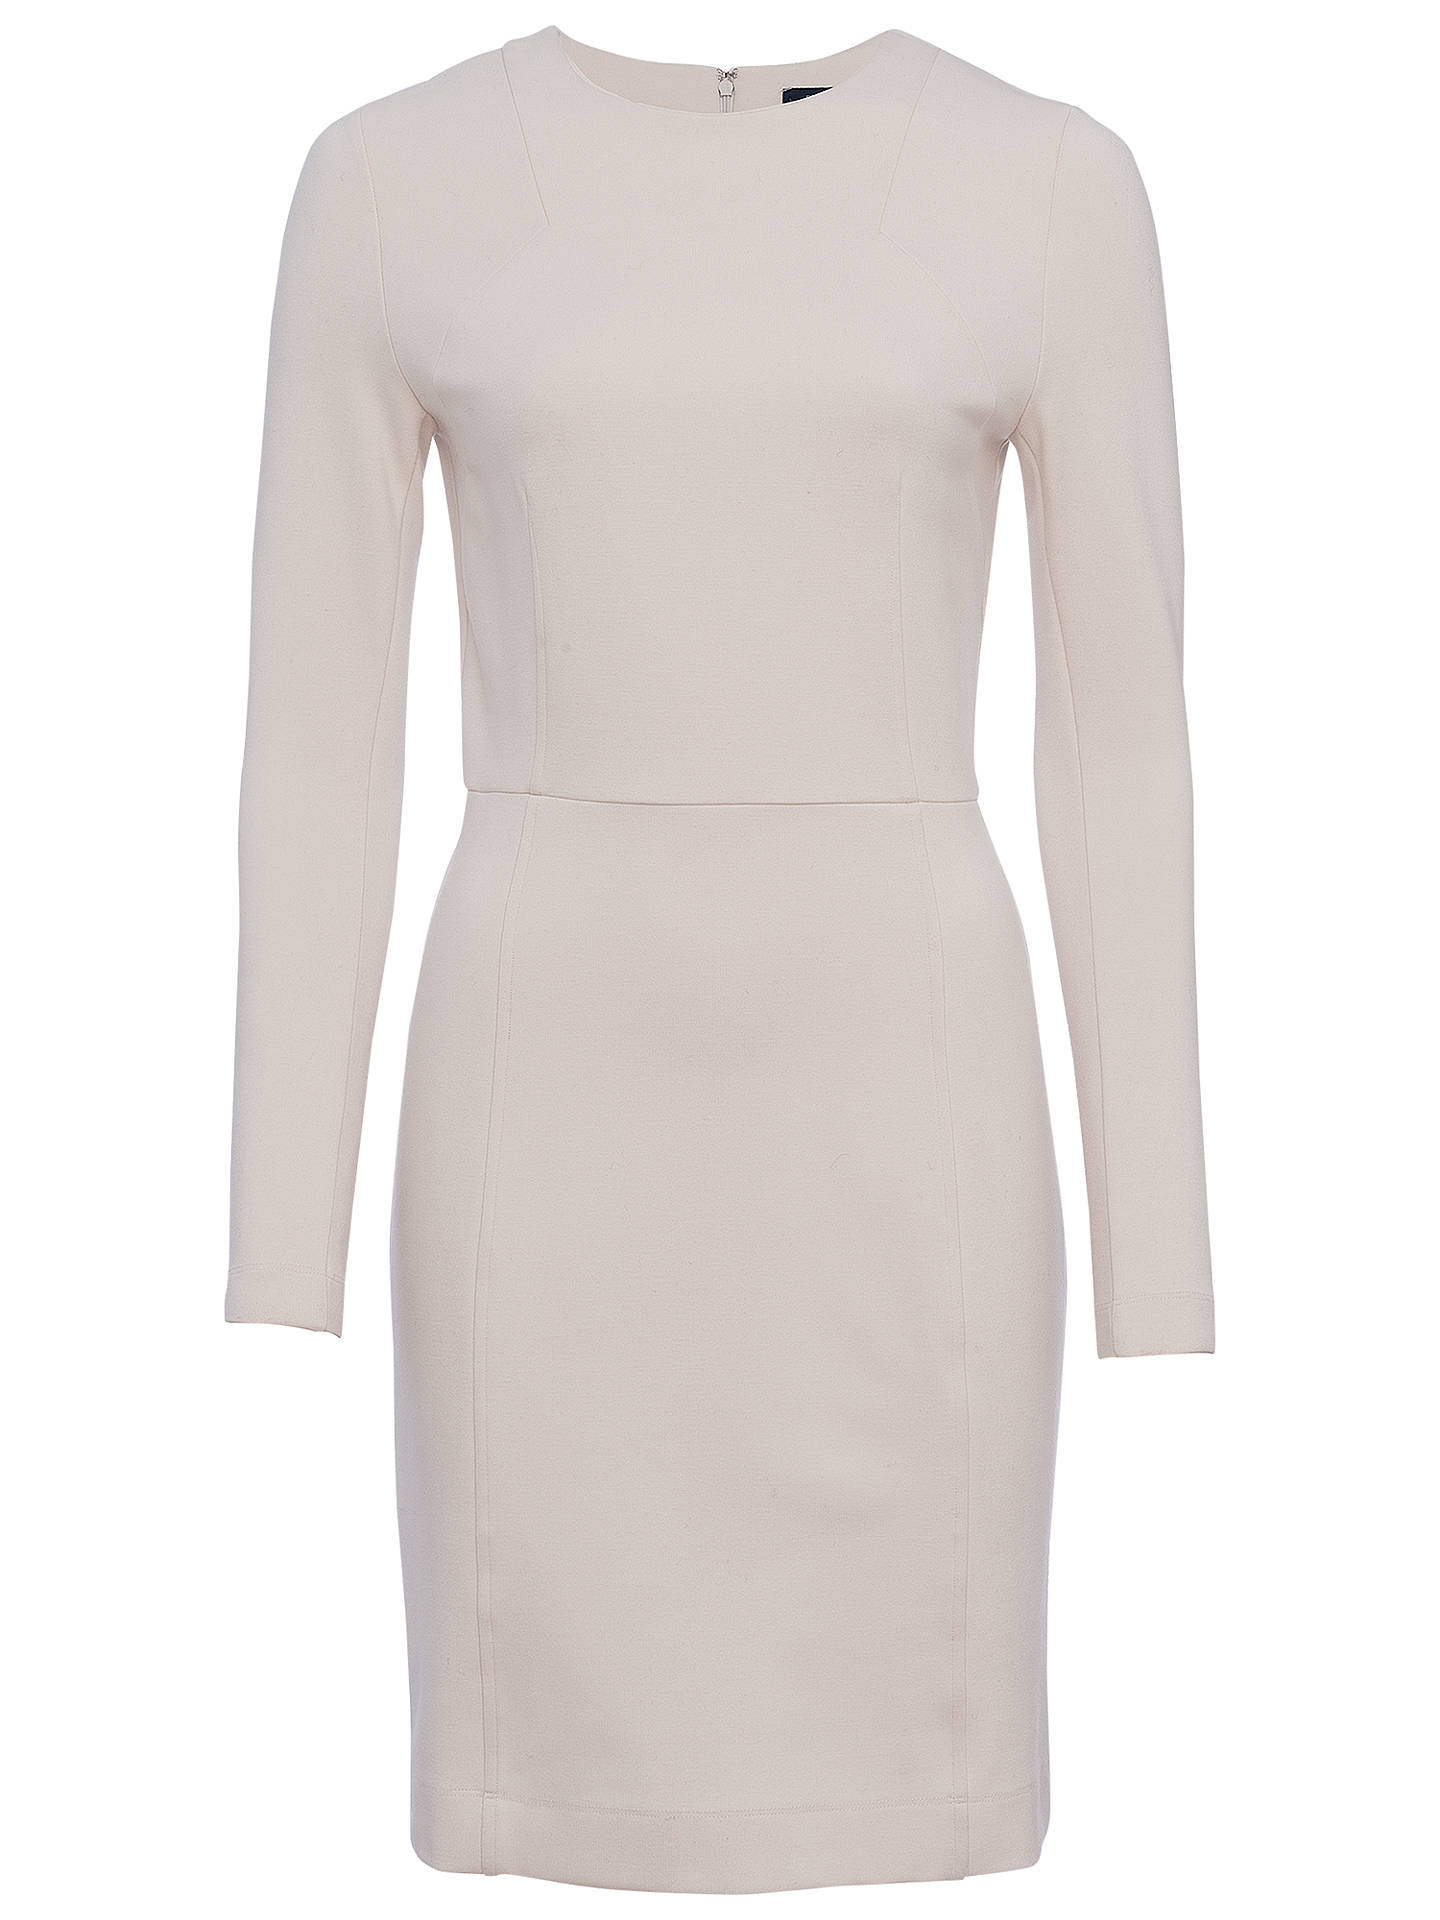 f251b7fbfb French Connection Lula Stretch Bodycon Dress at John Lewis   Partners